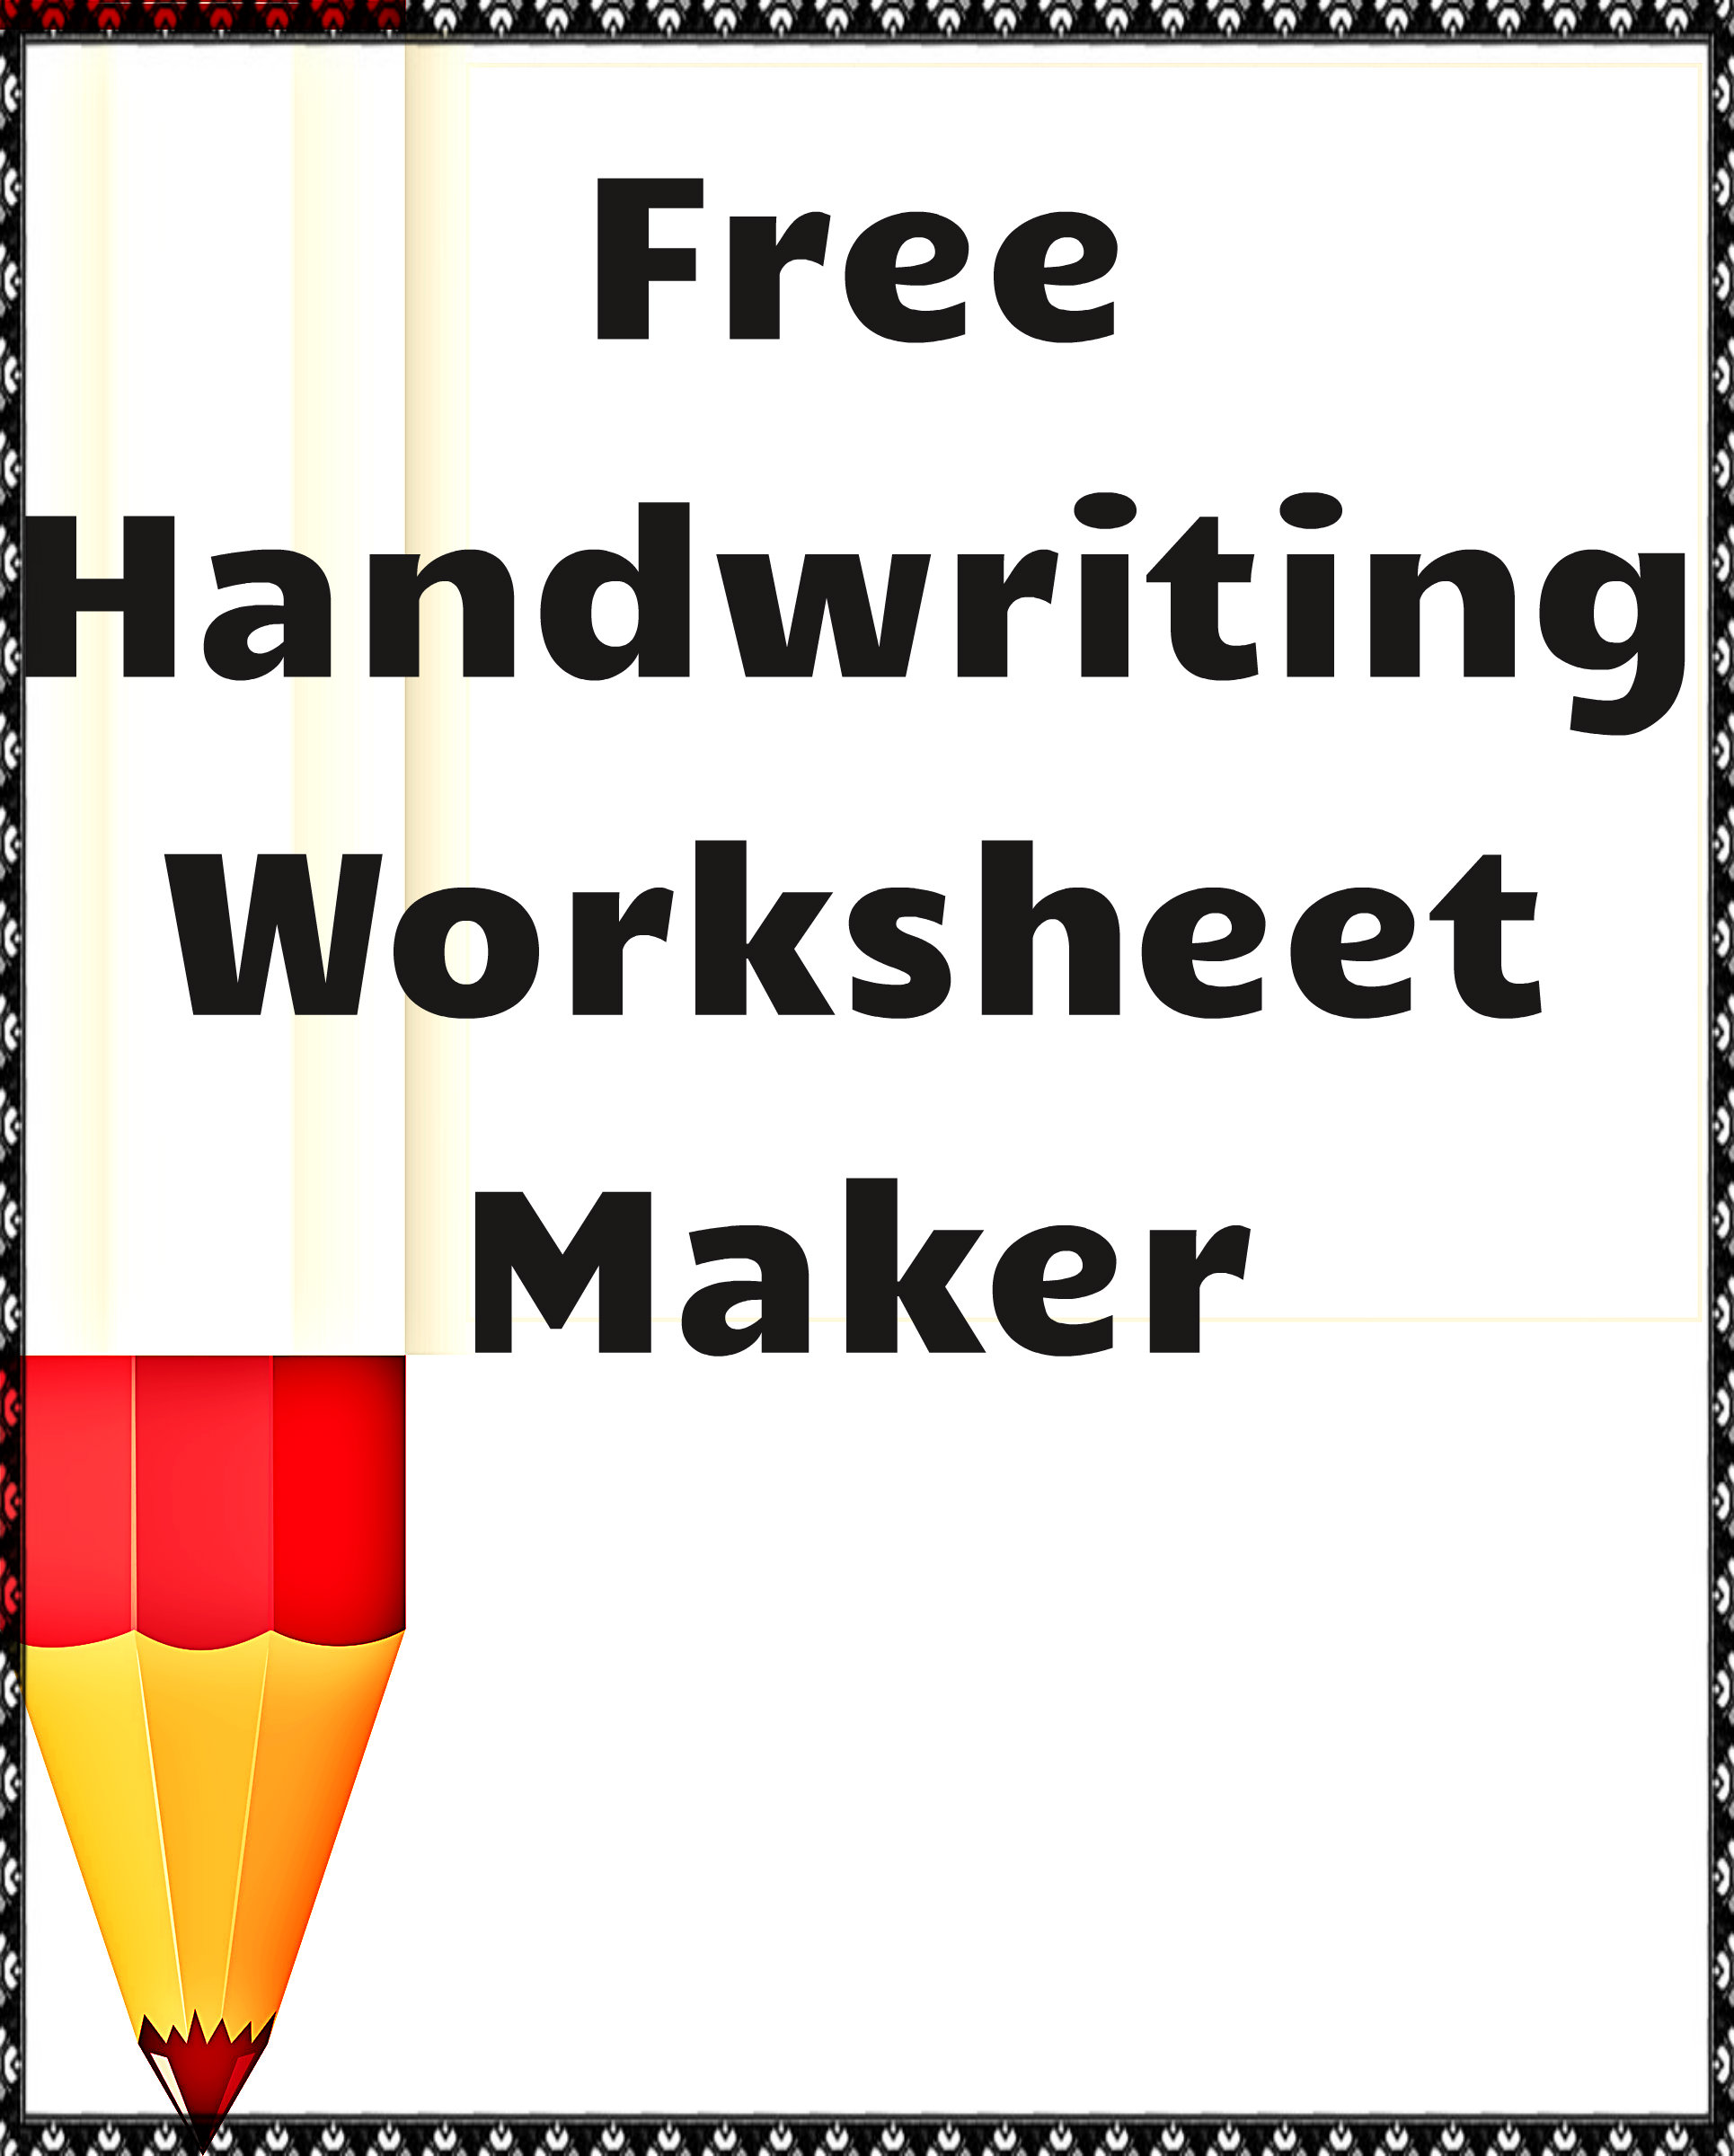 Print Handwriting Worksheet Maker Worksheet Kids – Handwriting Worksheet Maker for Kindergarten